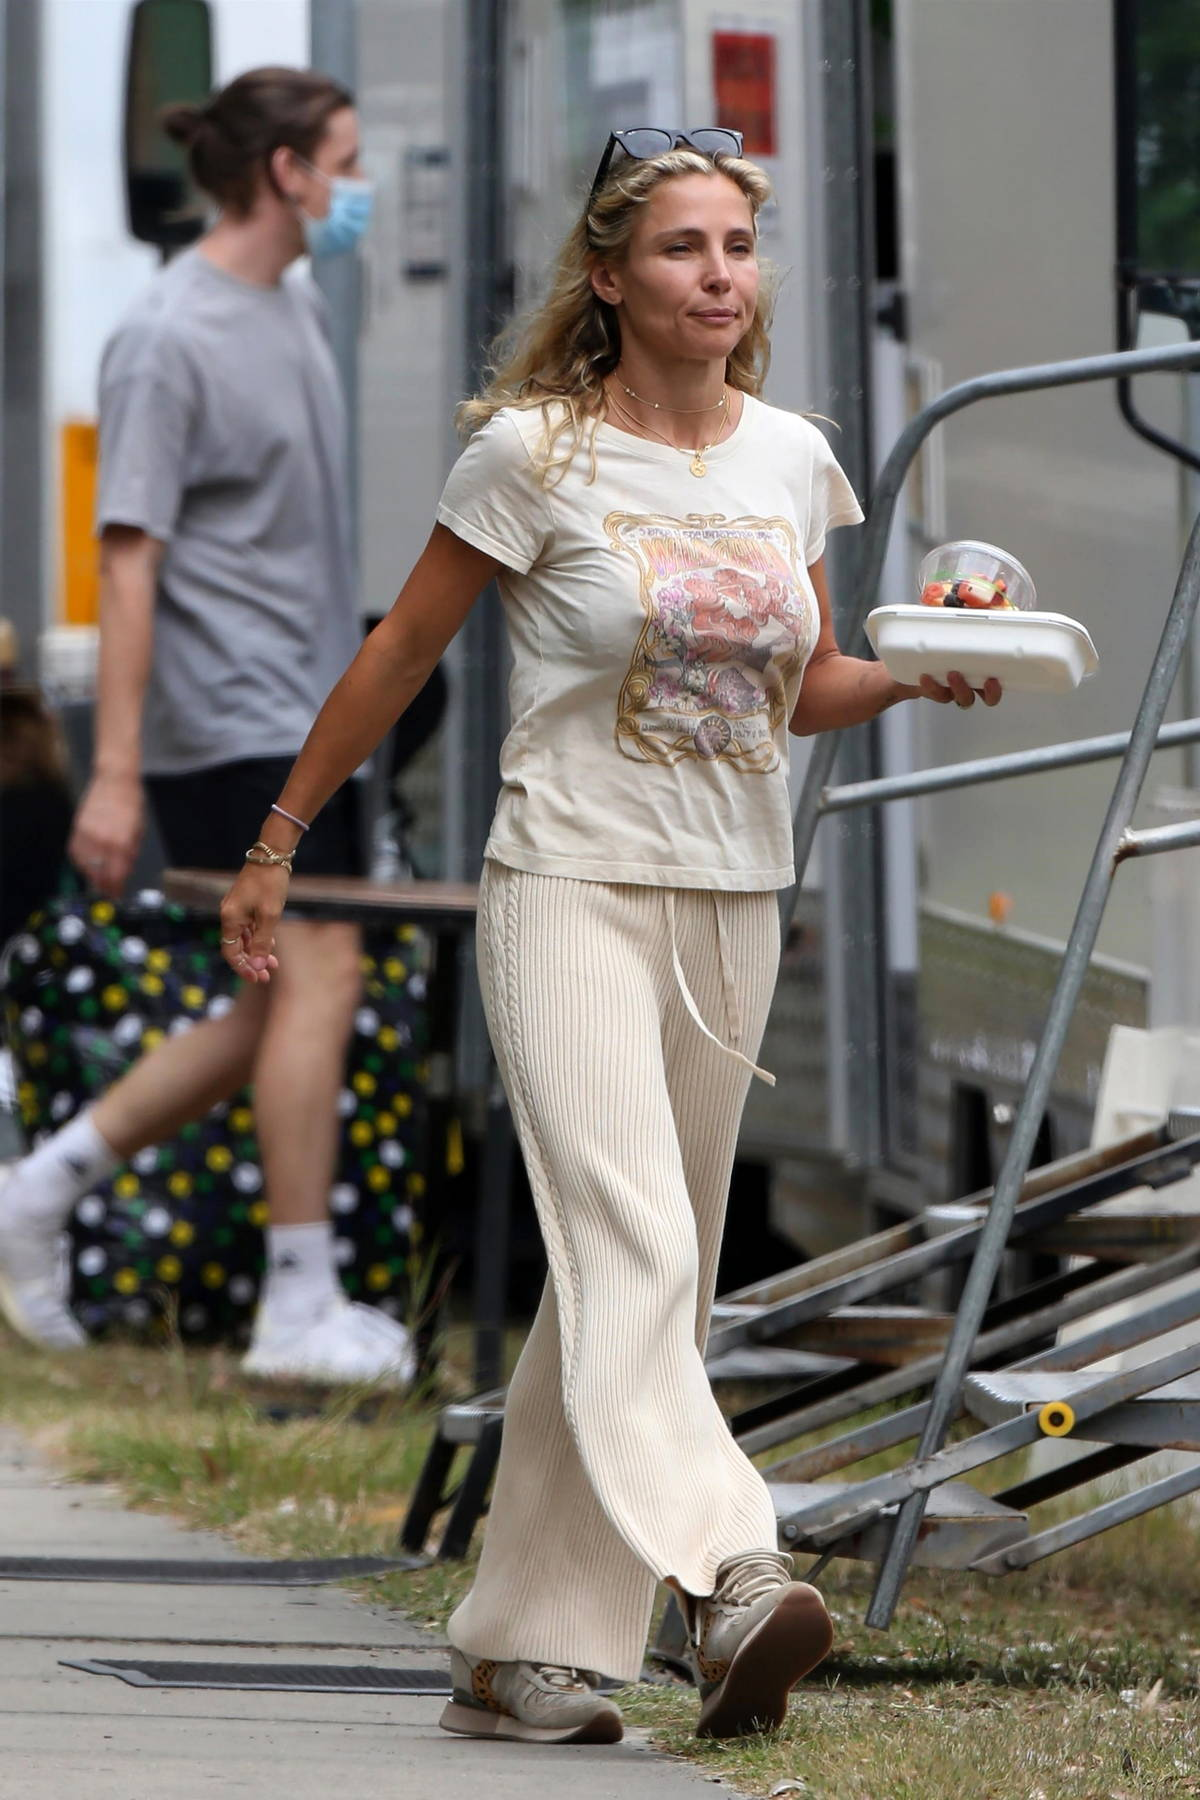 Elsa Pataky spotted carrying a salad bowl while on the set of 'Carmen' in Sydney, Australia